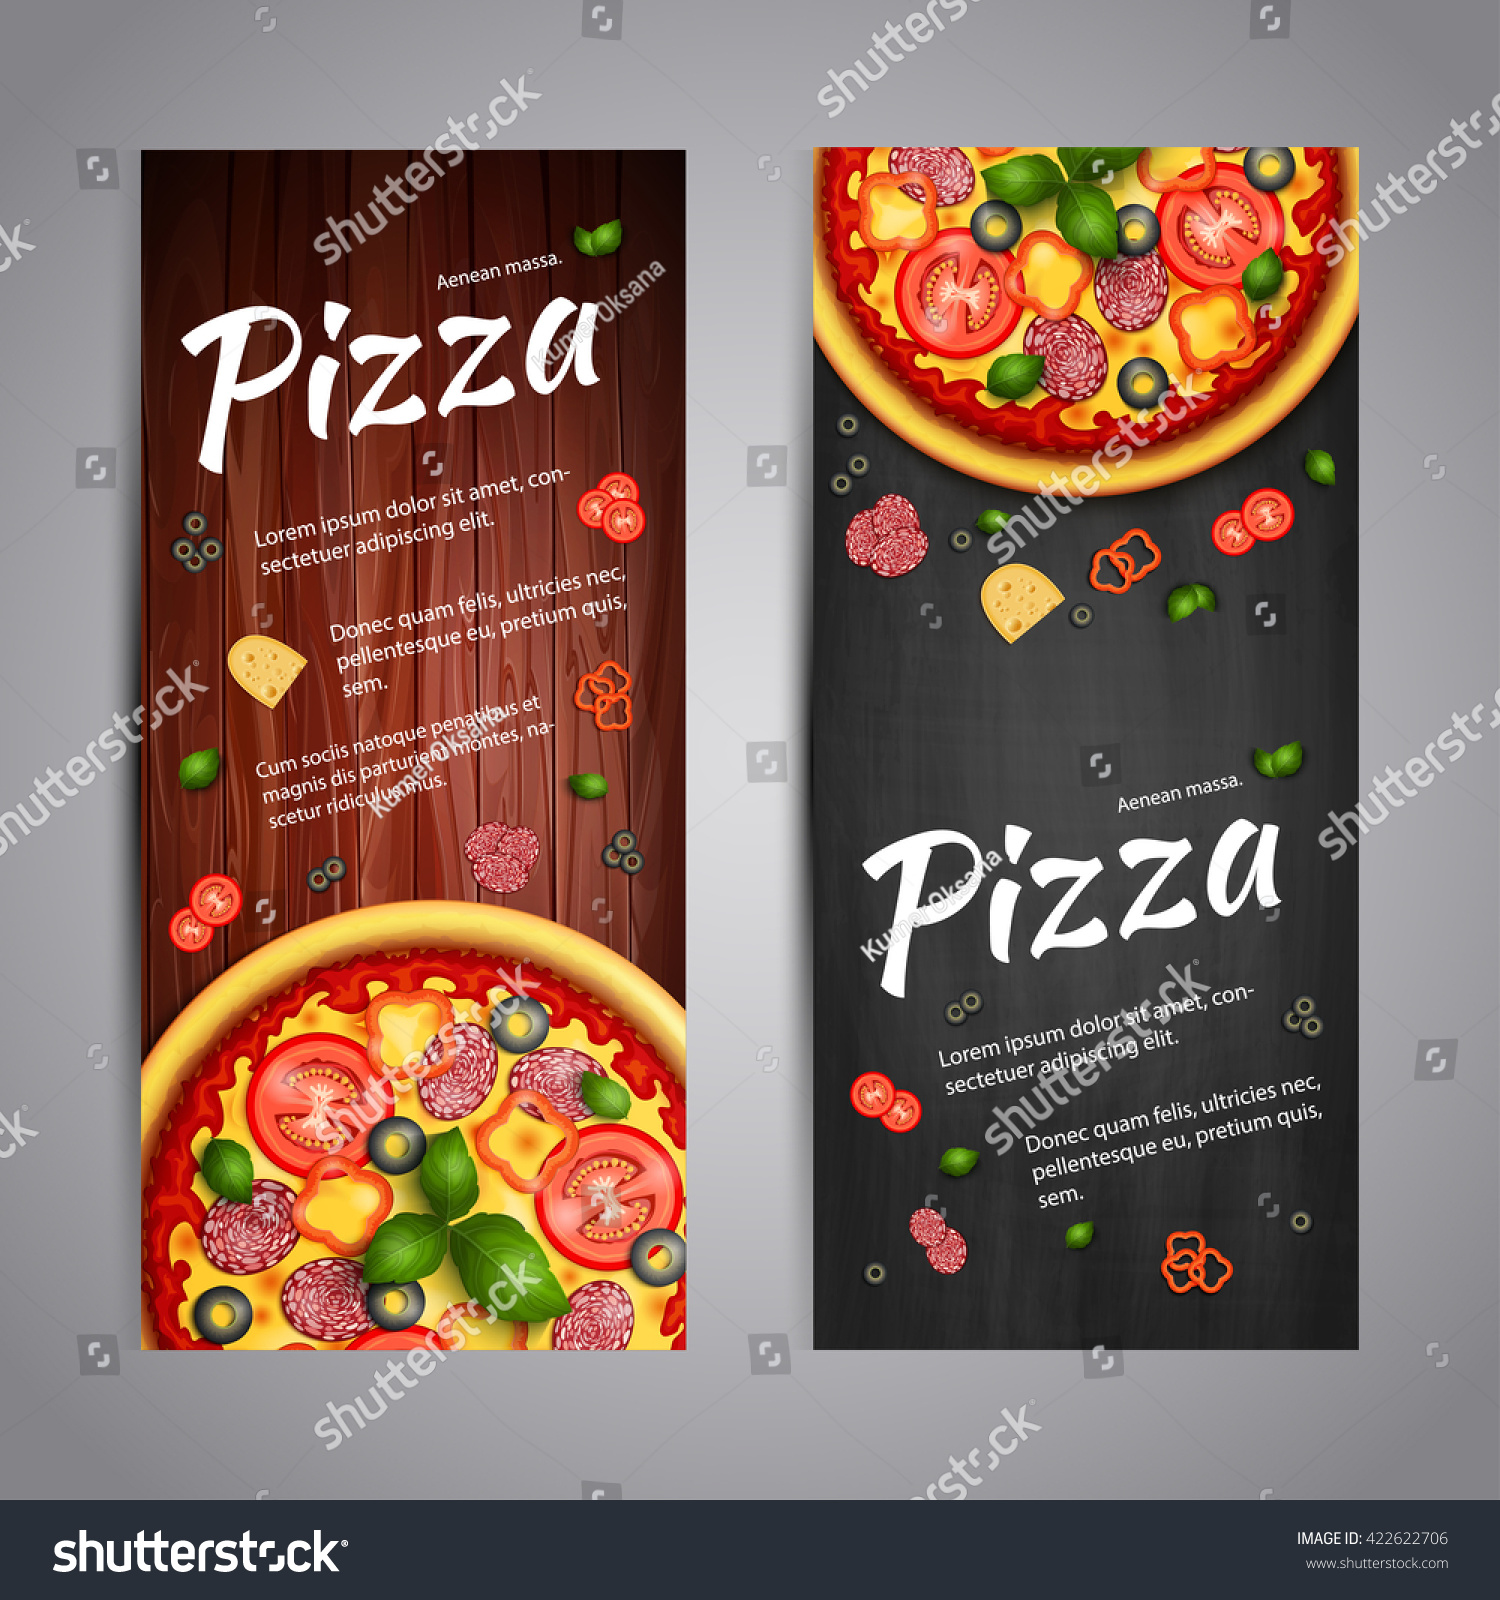 Realistic pizza pizzeria flyer vector background stock for Pizza pizzeria